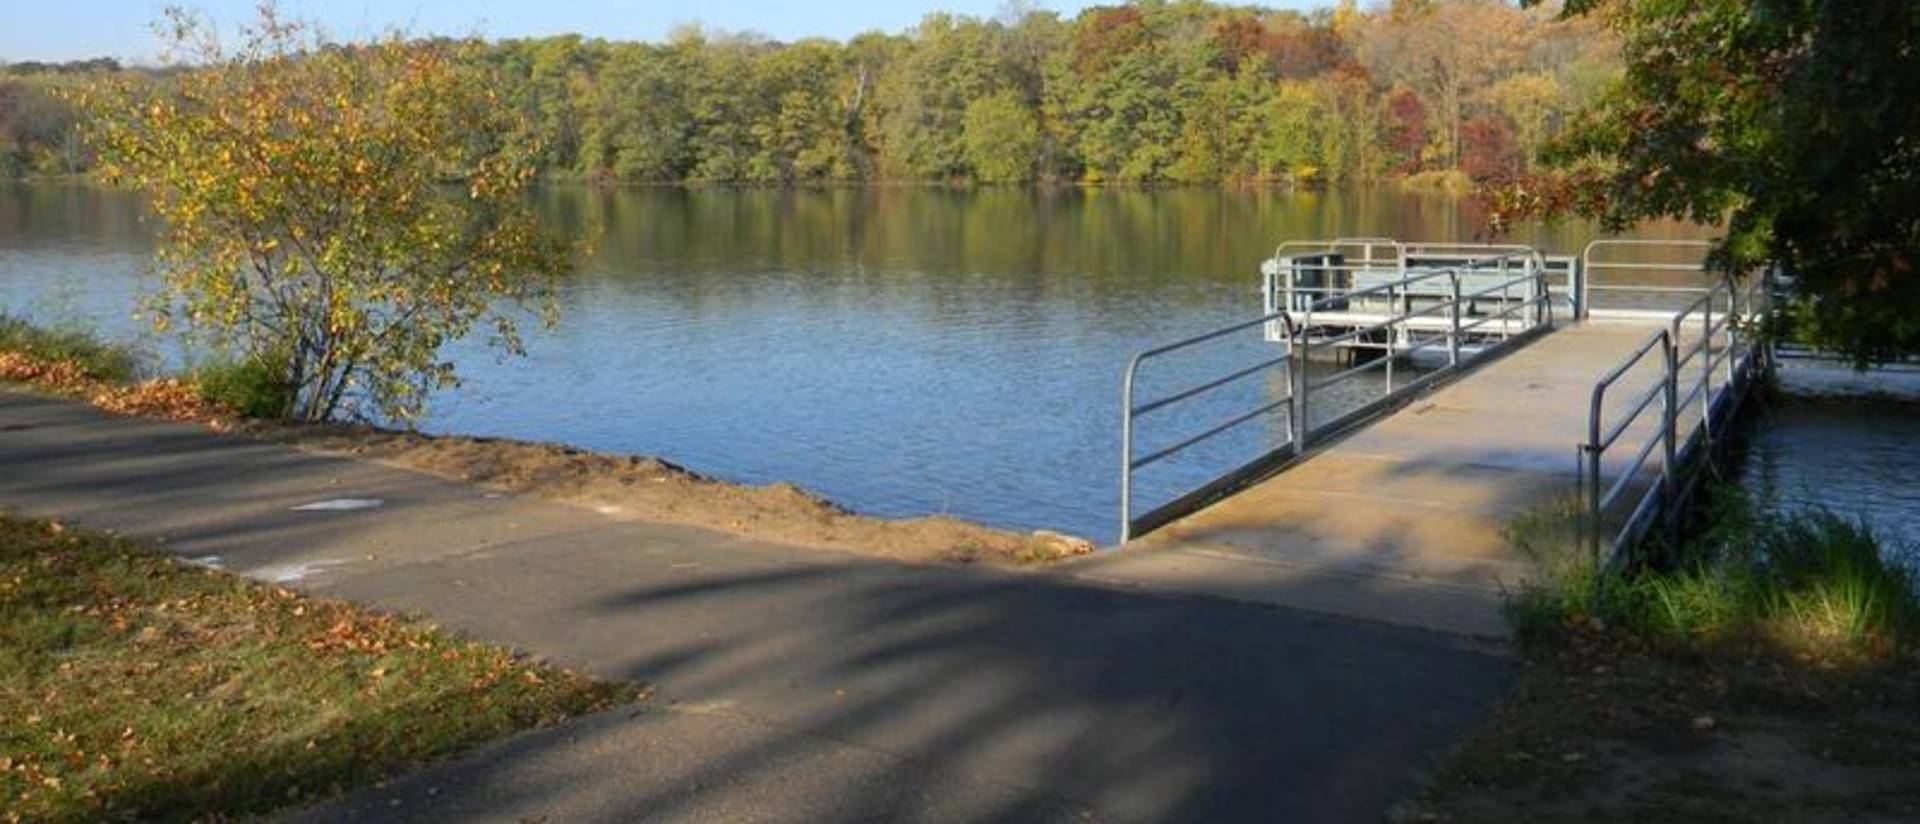 "This image, part of McIntyre Library's ""ADA30: Accessibility in the Chippewa Valley"" online exhibit, depicts the Braun's Bay accessible boat launch into Half Moon Lake in Eau Claire."